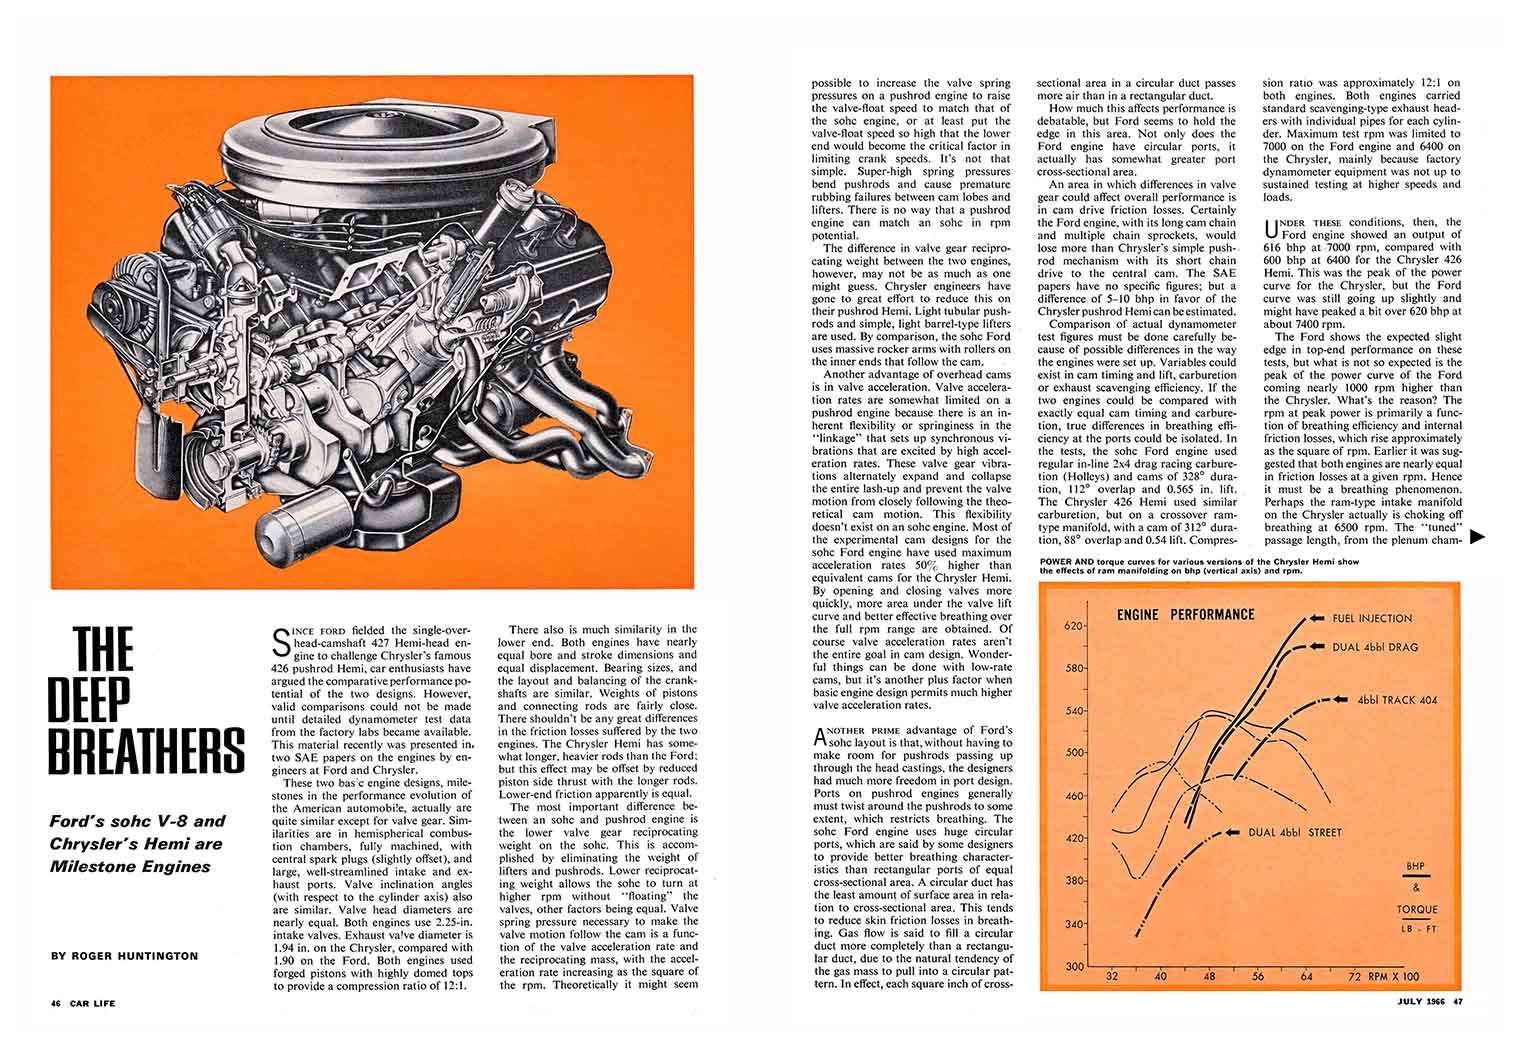 1966 Comparison of the Ford SOHC 427 and 426 Hemi